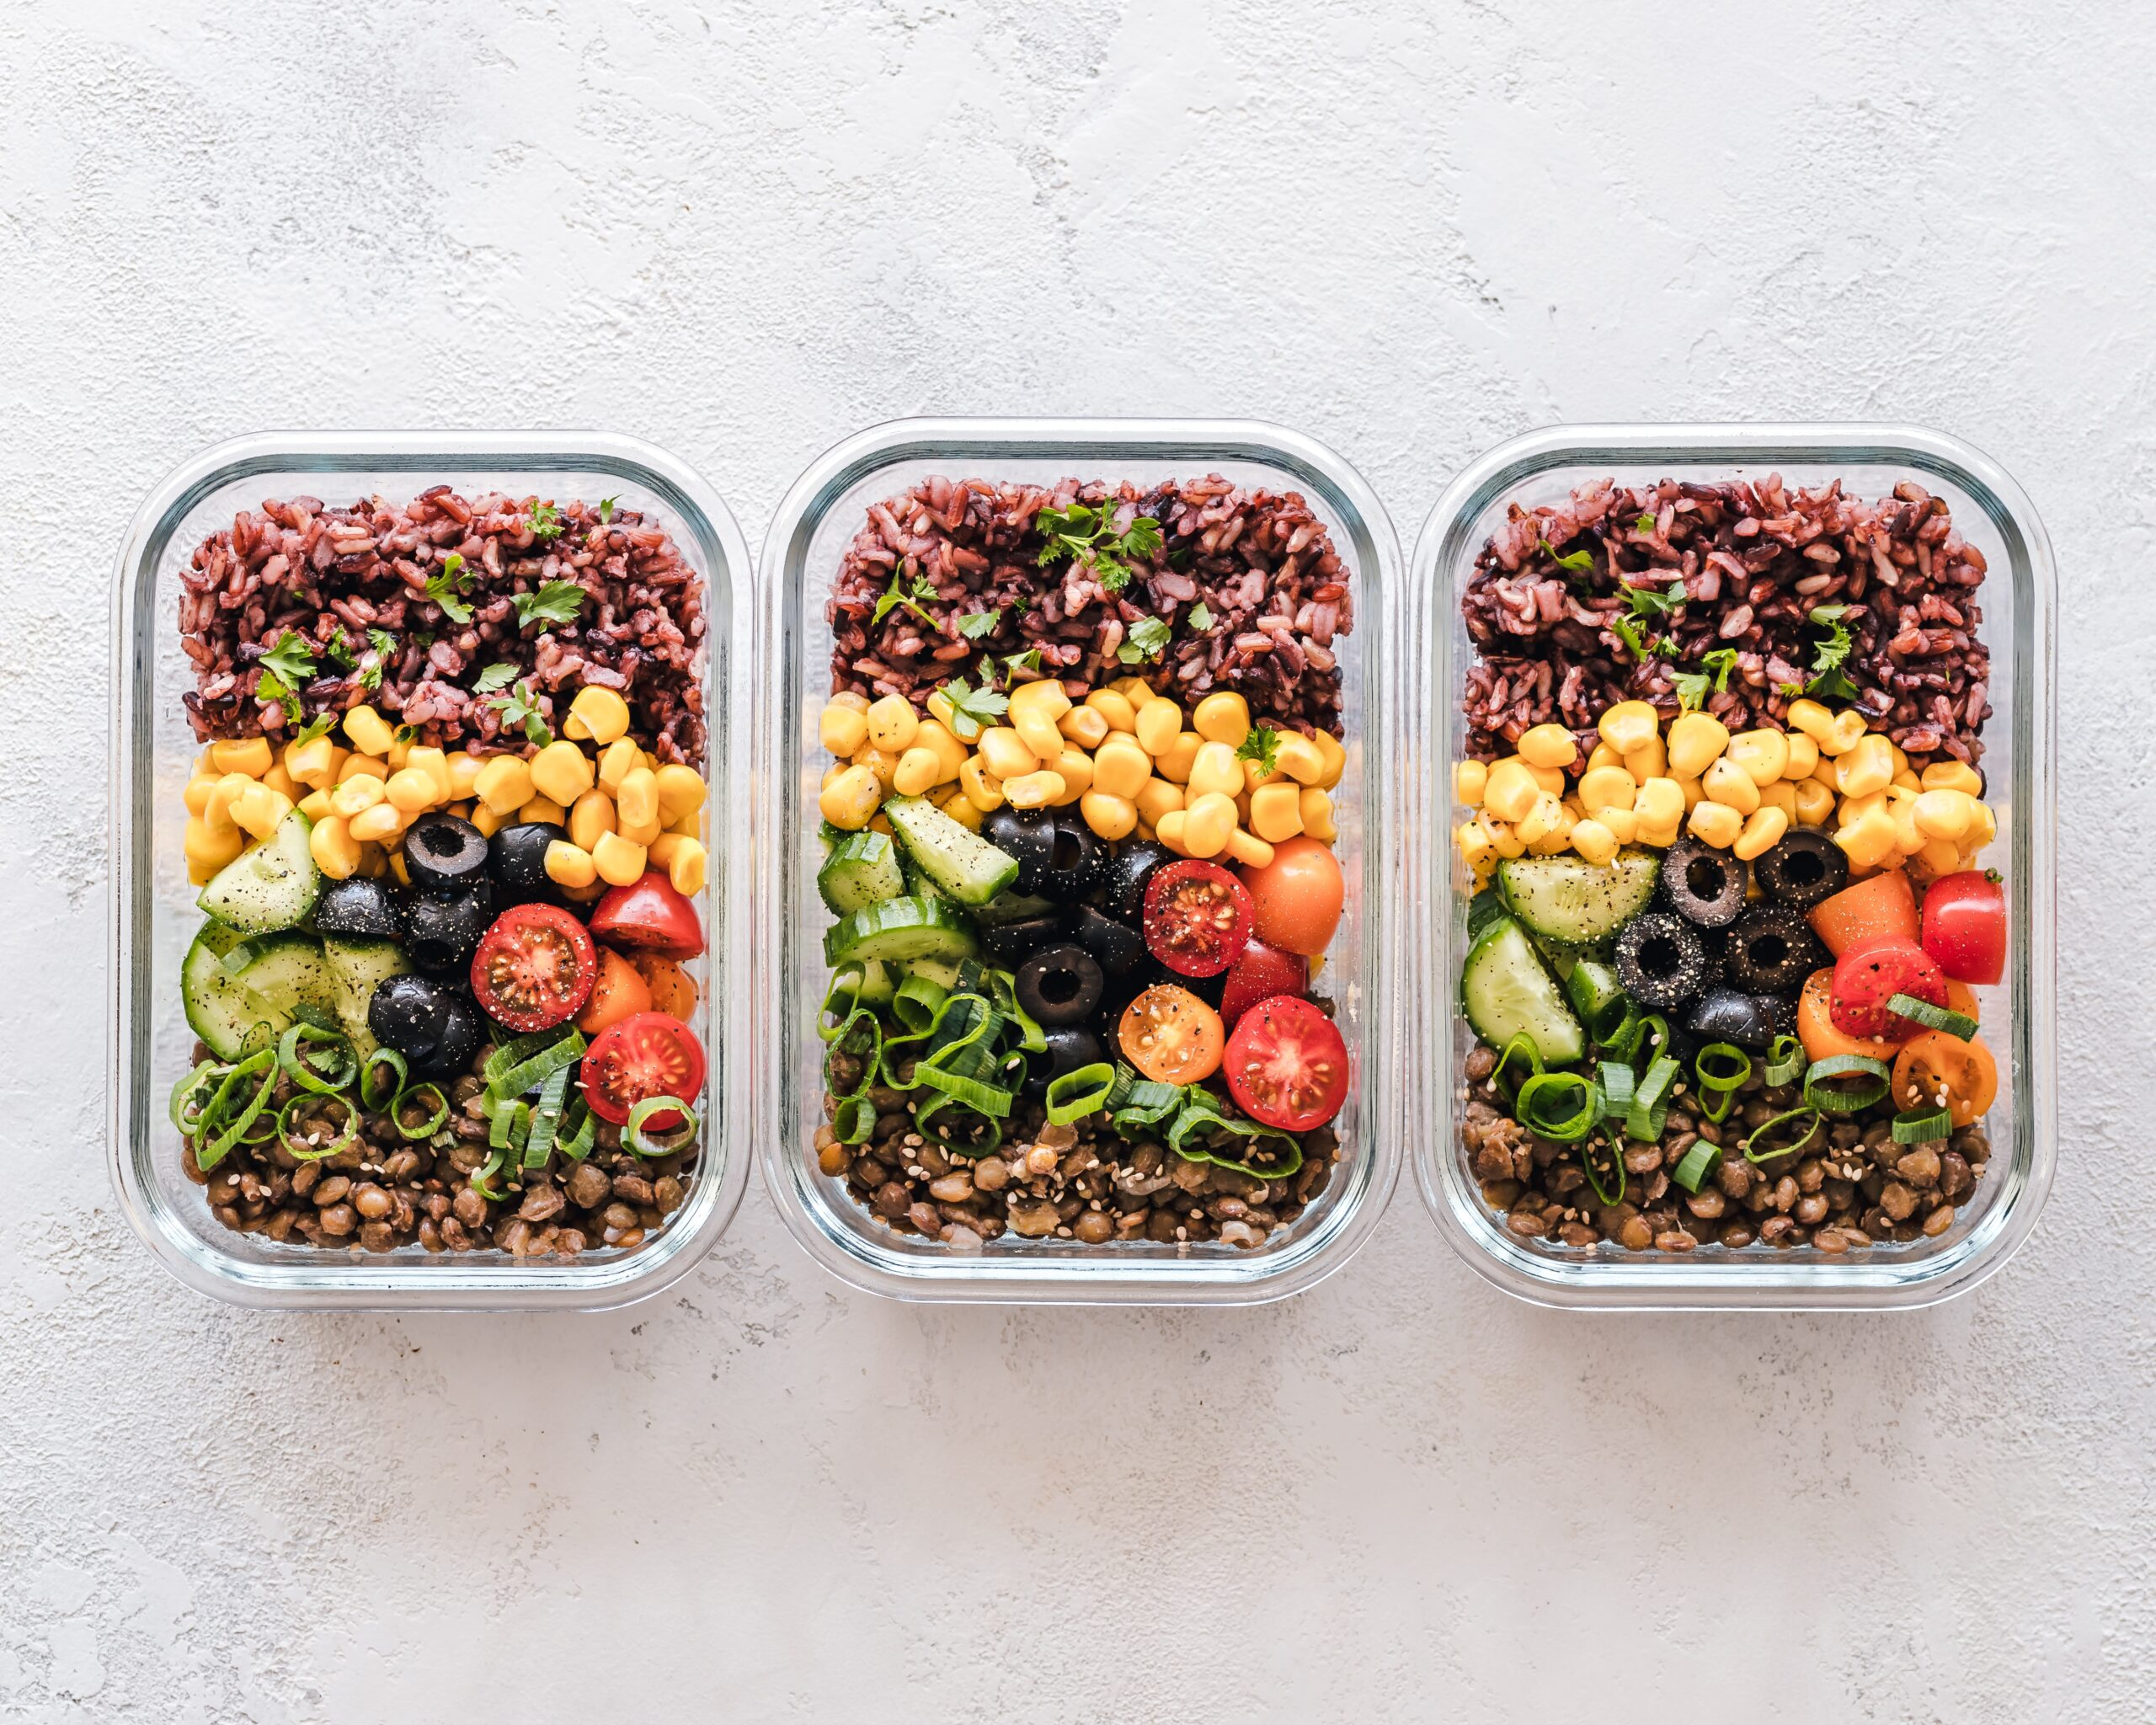 35+ Budget-Friendly Meal Prep Ideas That Will Make Your Life Easier - CollectingCents